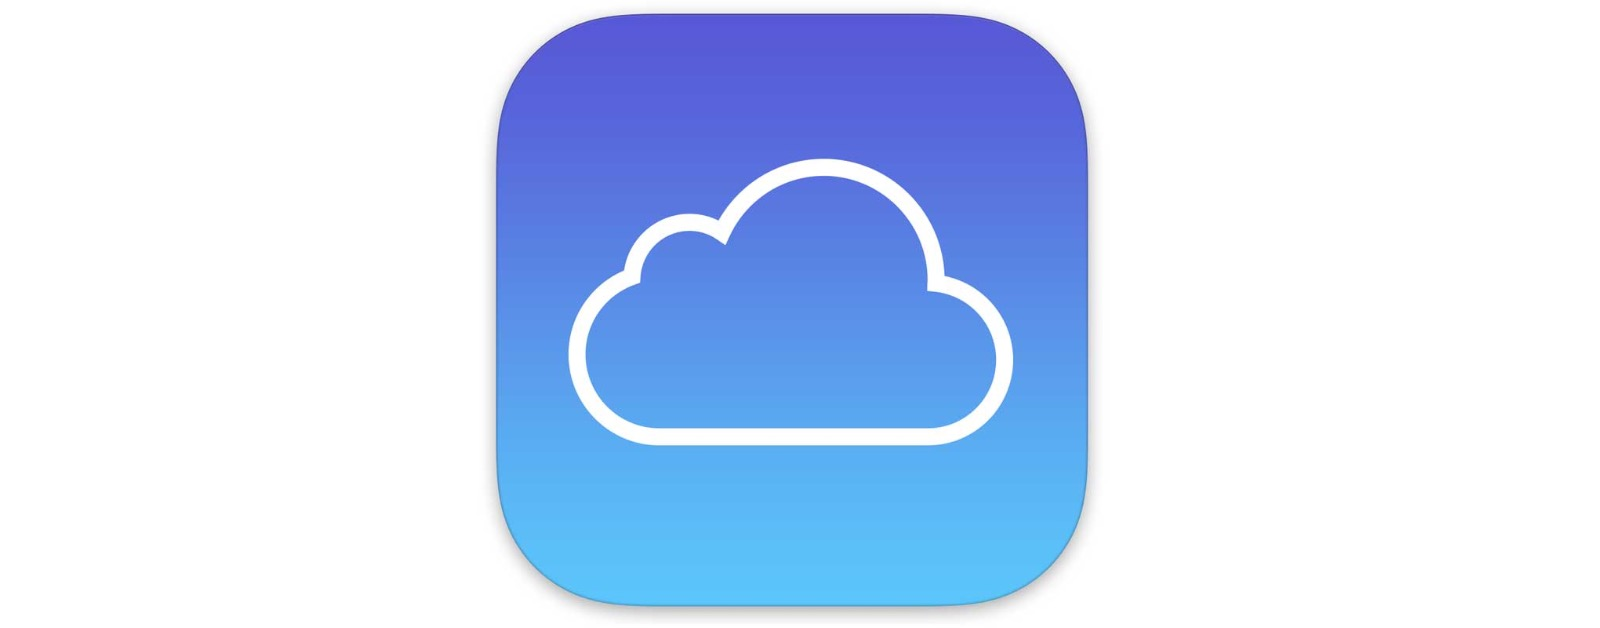 Image of iCloud icon. U.S. Customs agents could search our iCloud.